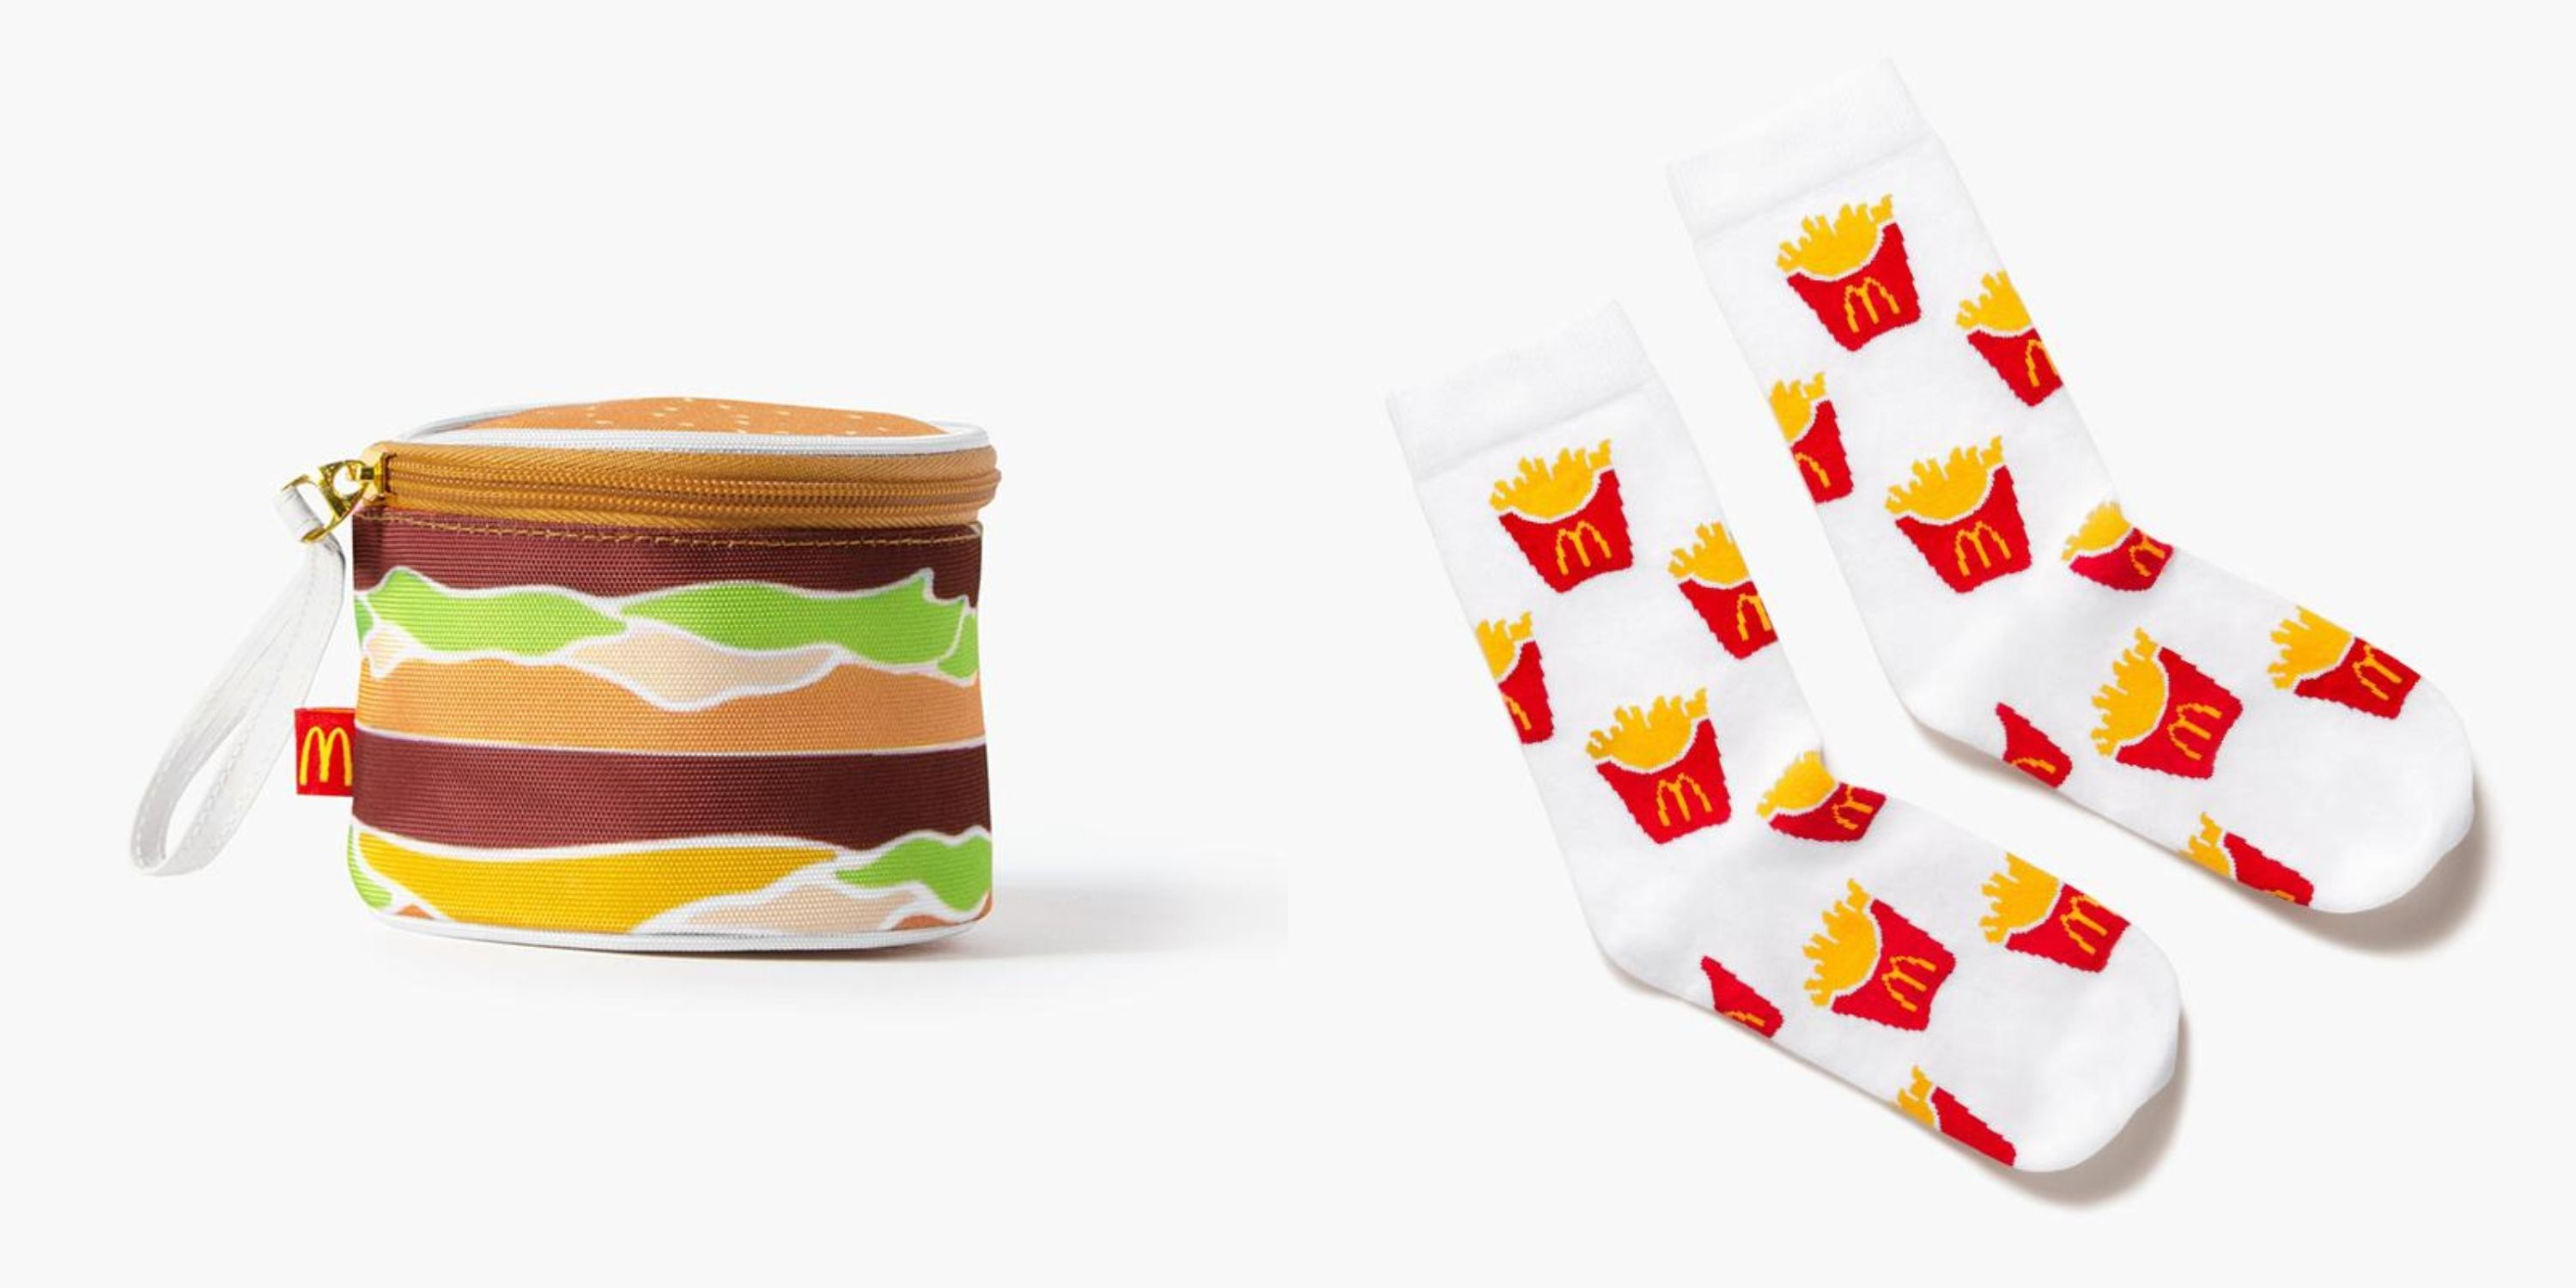 McDonald's Dropped A Clothing Line That Includes Holiday Sweaters And A Big Mac Bag